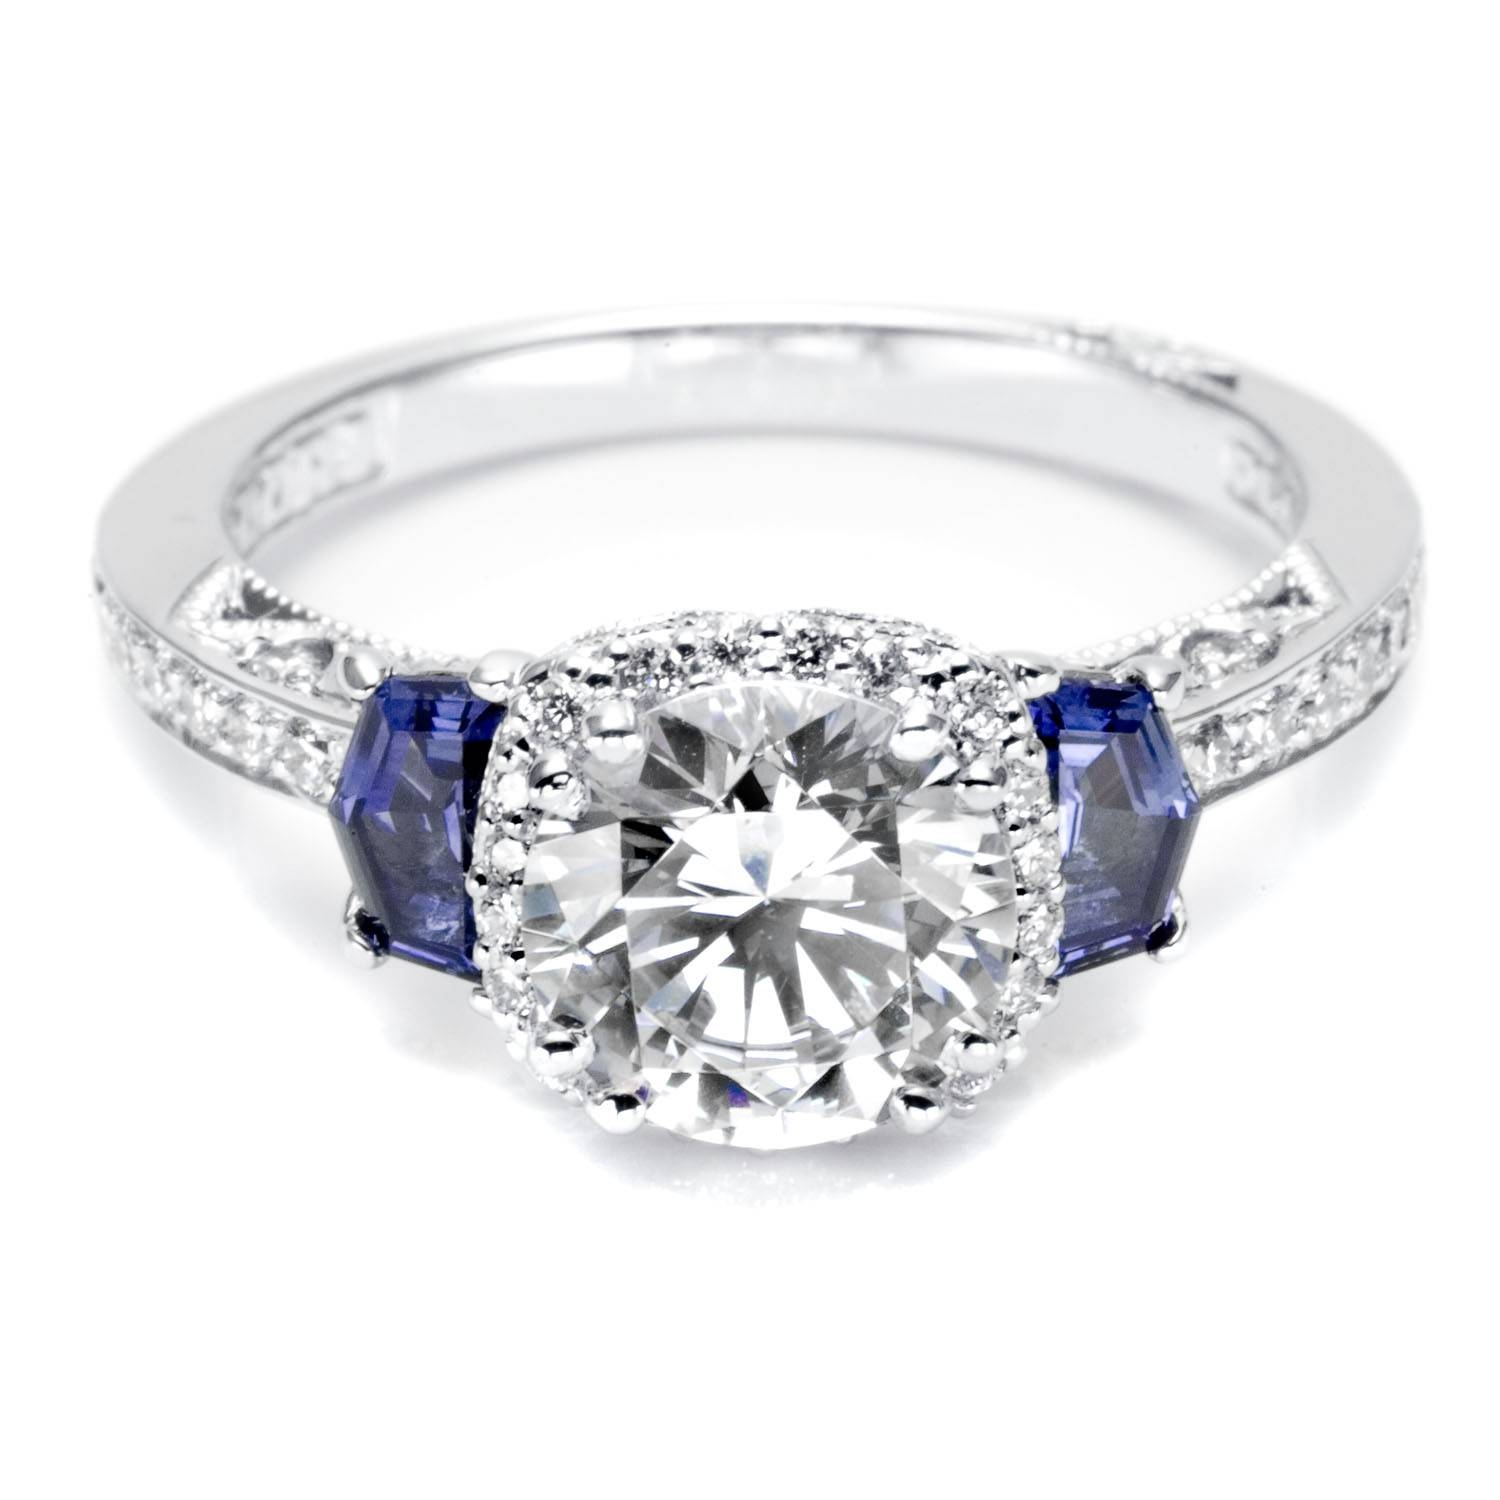 Engagement Rings : Holts Rings Diamond Engagement Rings With Within Engagement Rings With Sapphires (Gallery 2 of 15)